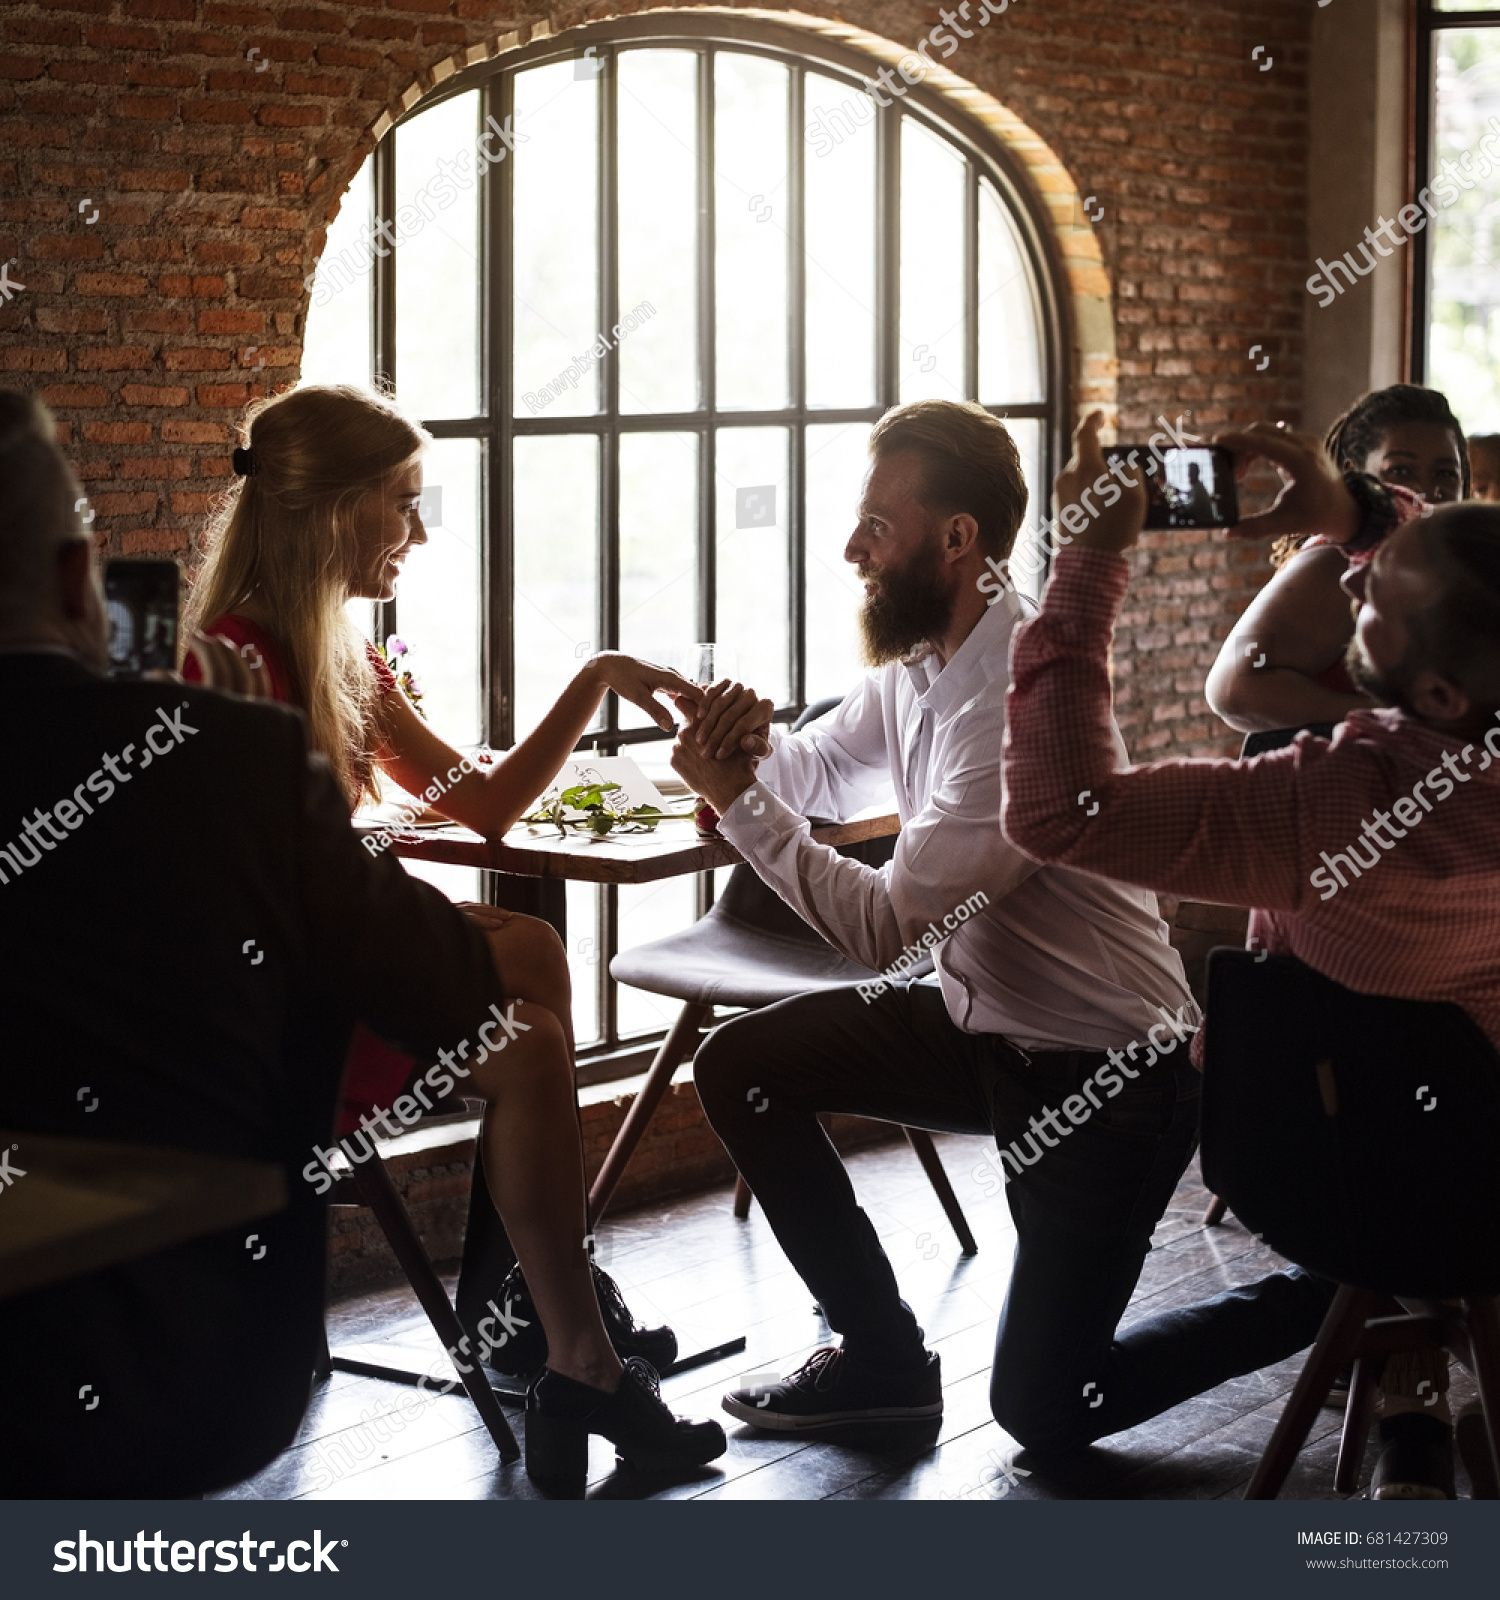 Restaurant Chilling Out Classy Lifestyle Reserved Stock Photo (Edit Now) 681427309